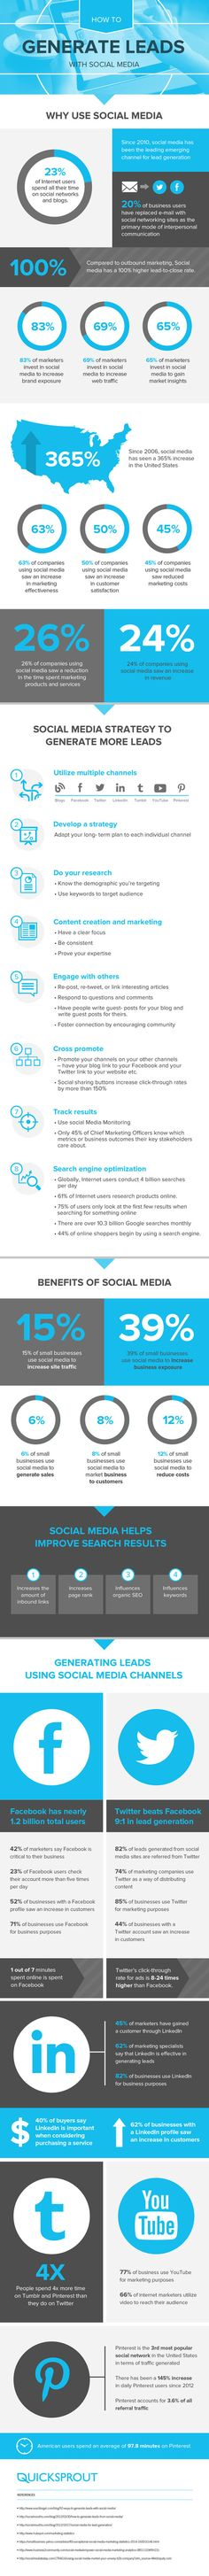 How To Generate Leads With Social Media [INFOGRAPHIC] | Better know and better use Social Media today (facebook, twitter...) | Scoop.it